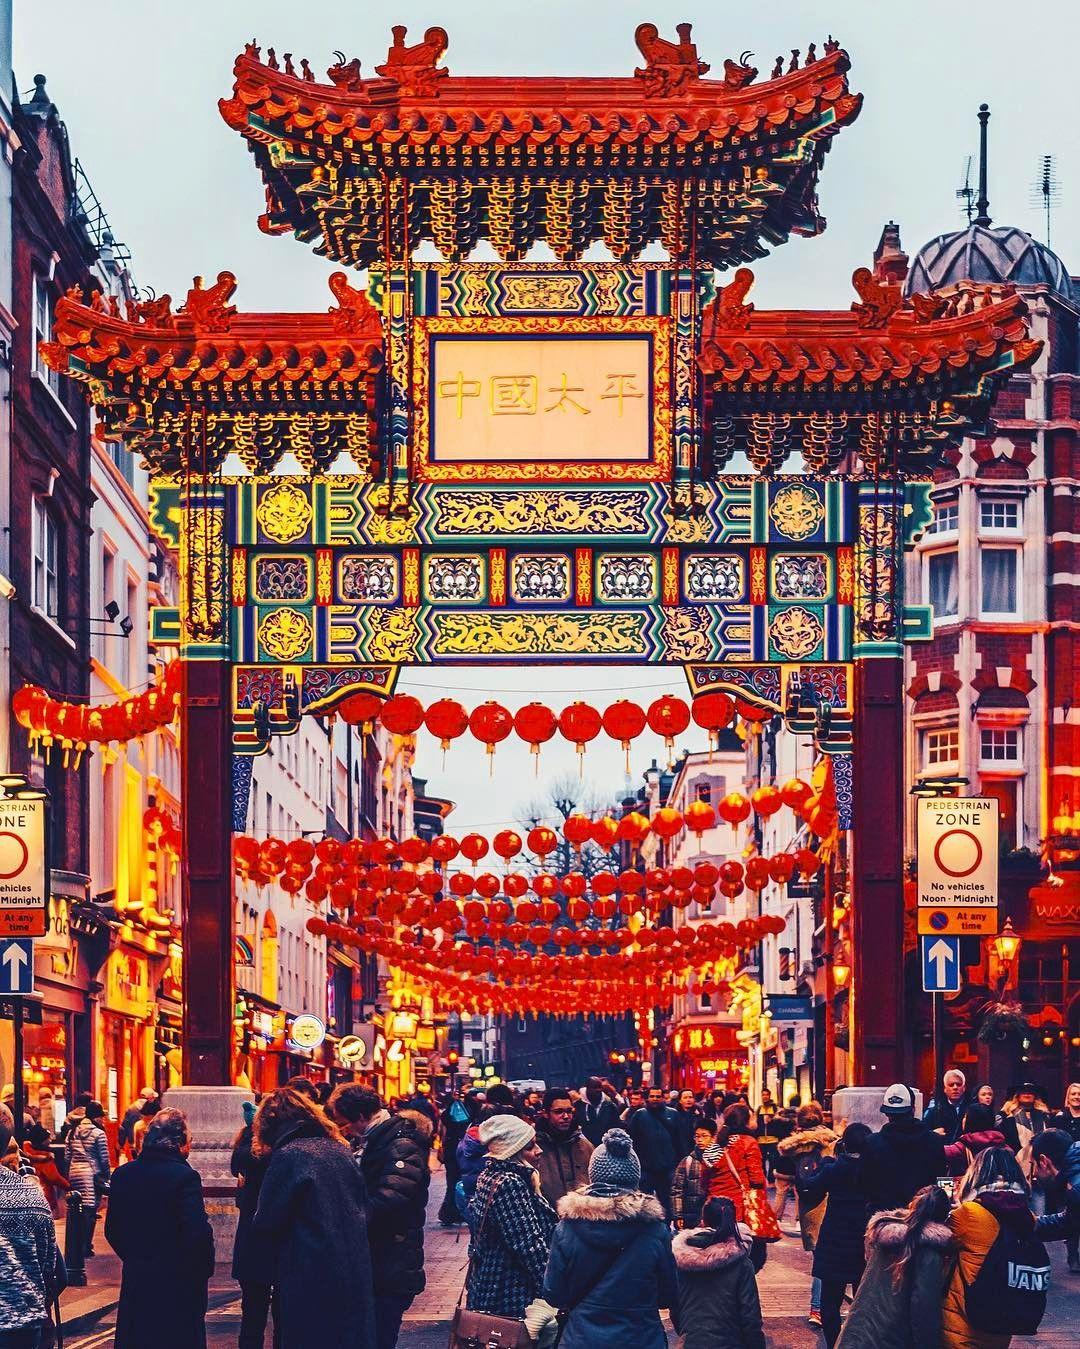 Happy Chinese New Year everyone! This is the London